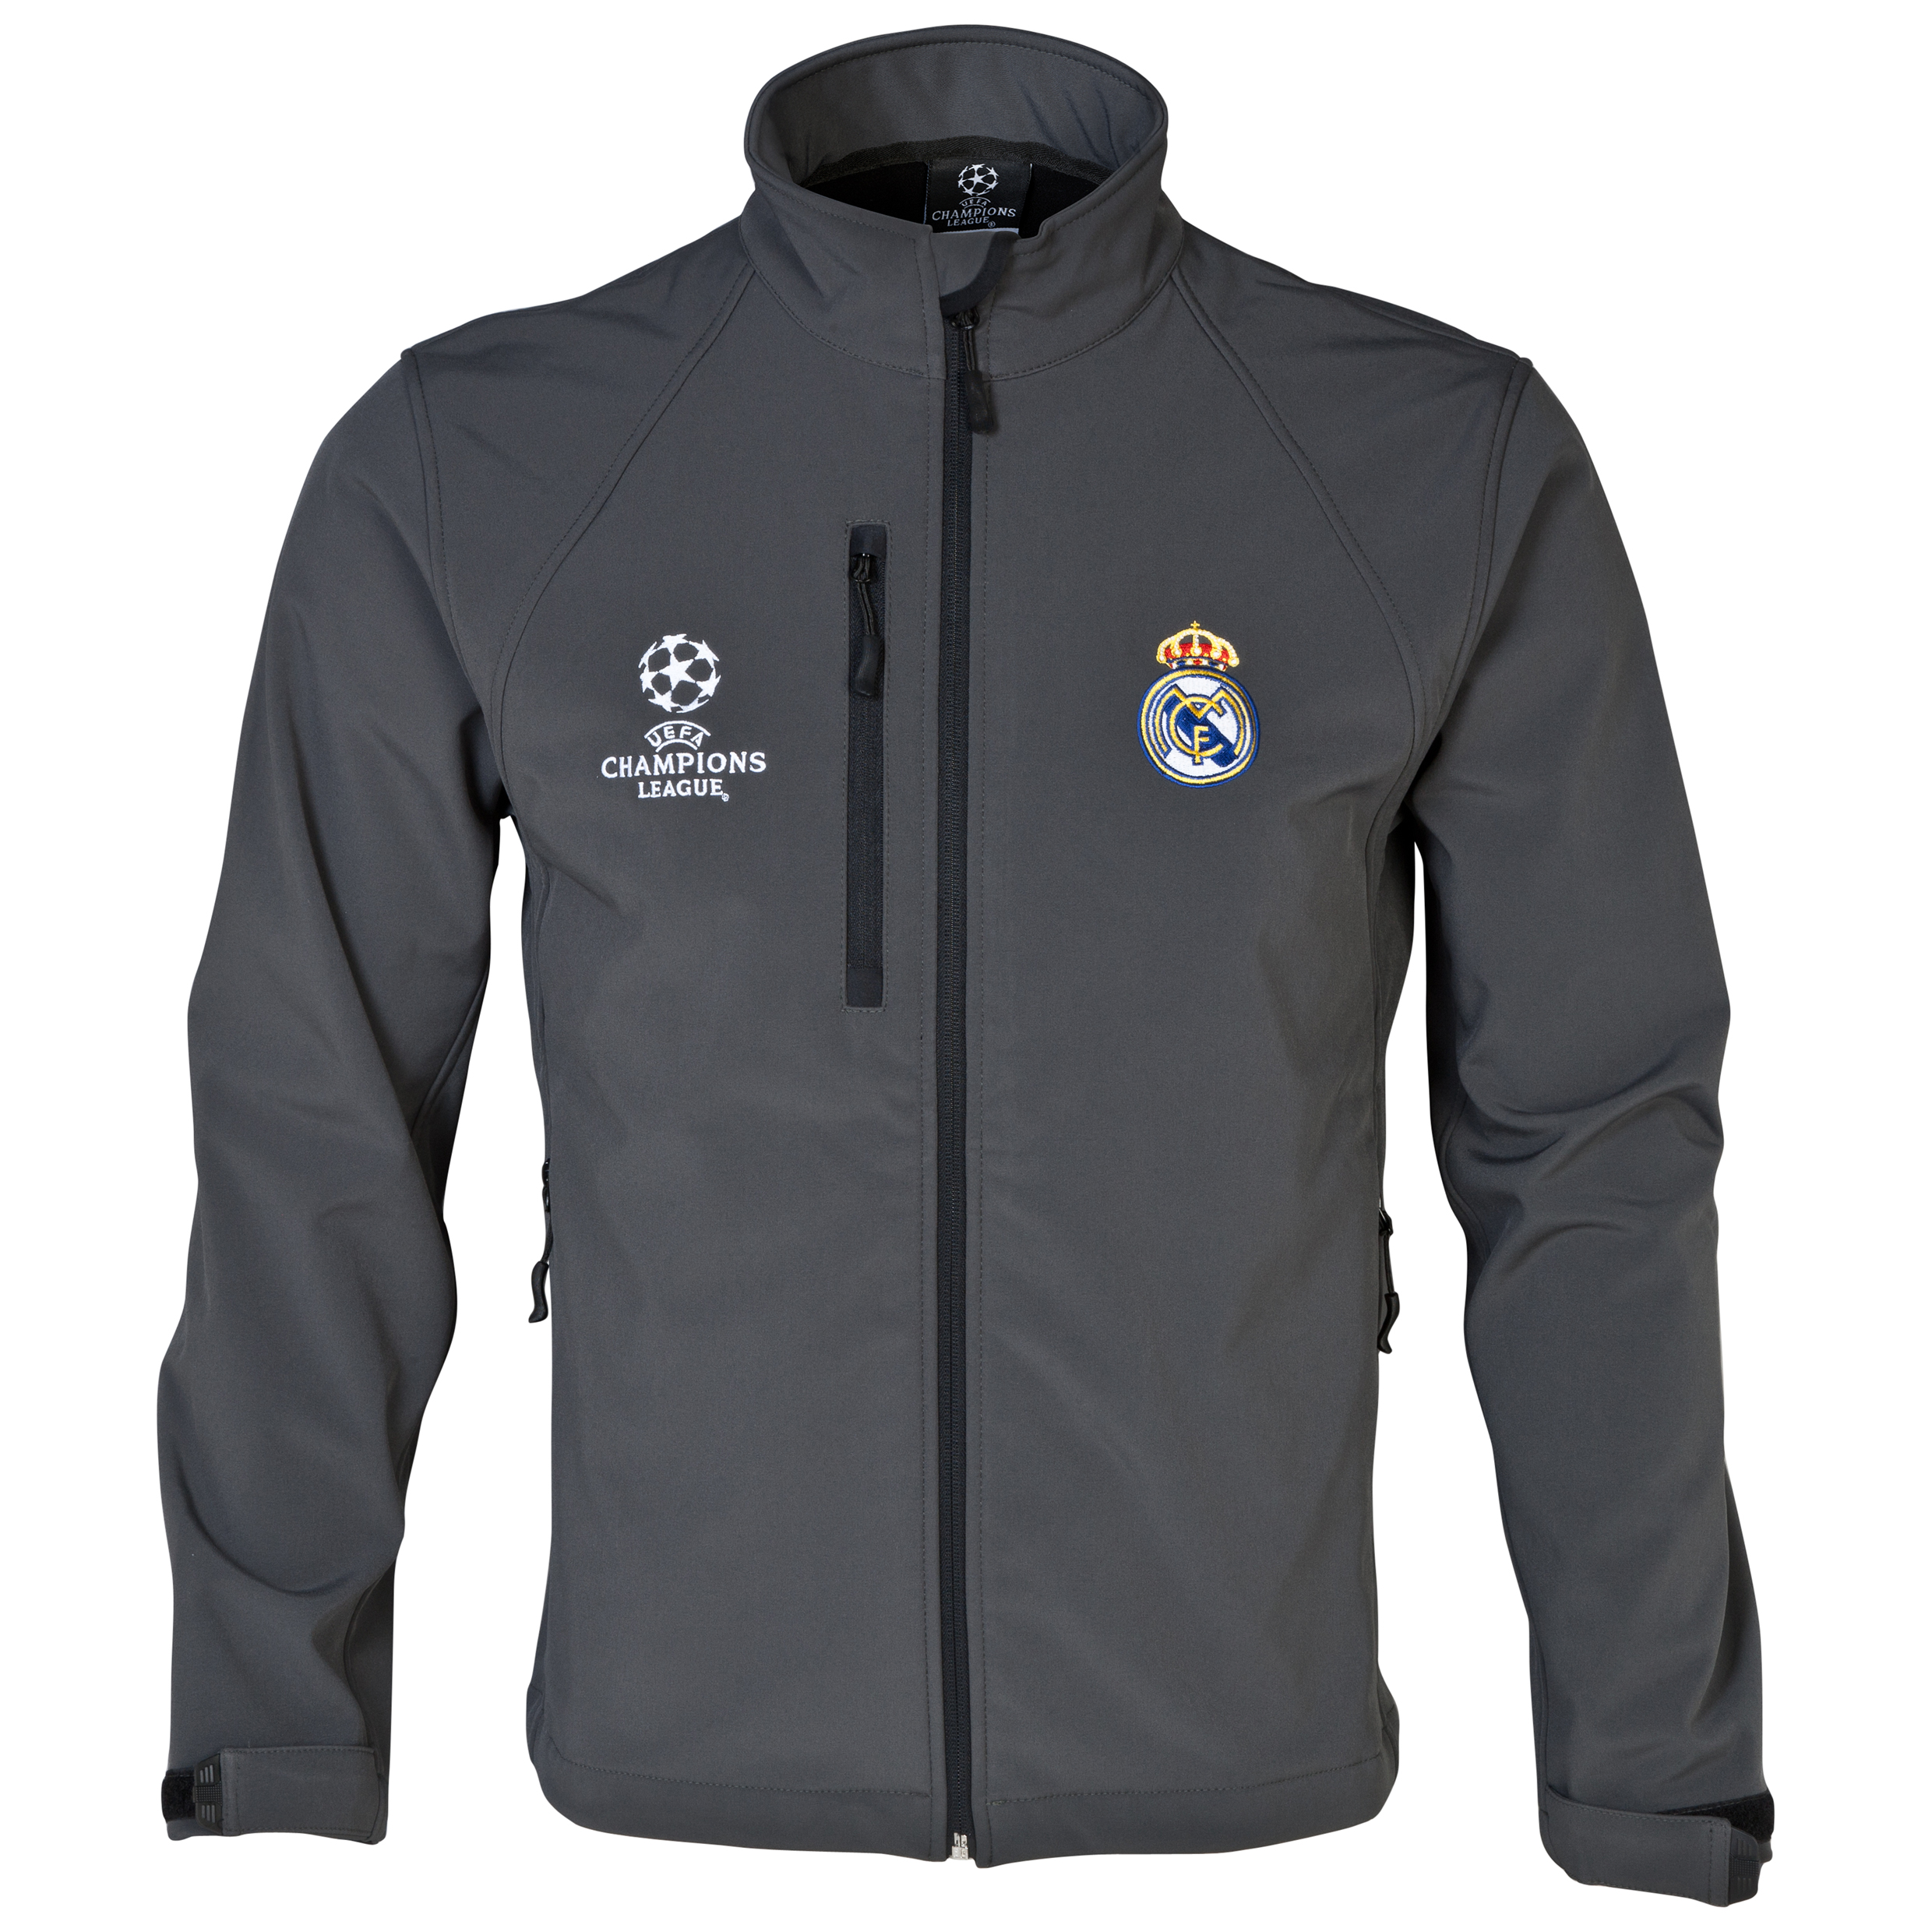 Real Madrid UEFA Champions League Soft Shell Jacket - Mens Charcoal